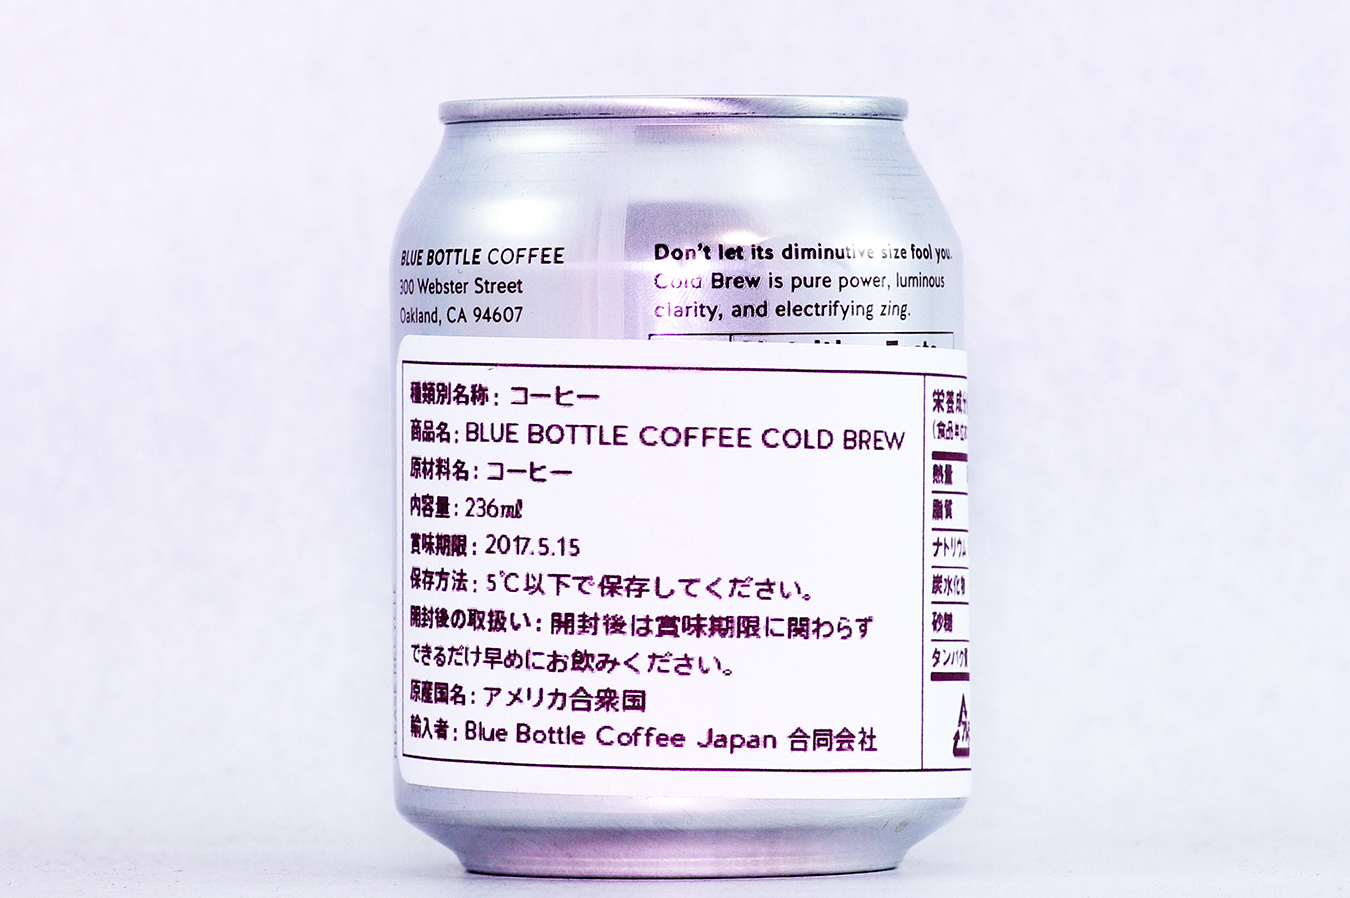 BLUE BOTTLE COFFEE COLD BREW 裏面 2017年3月